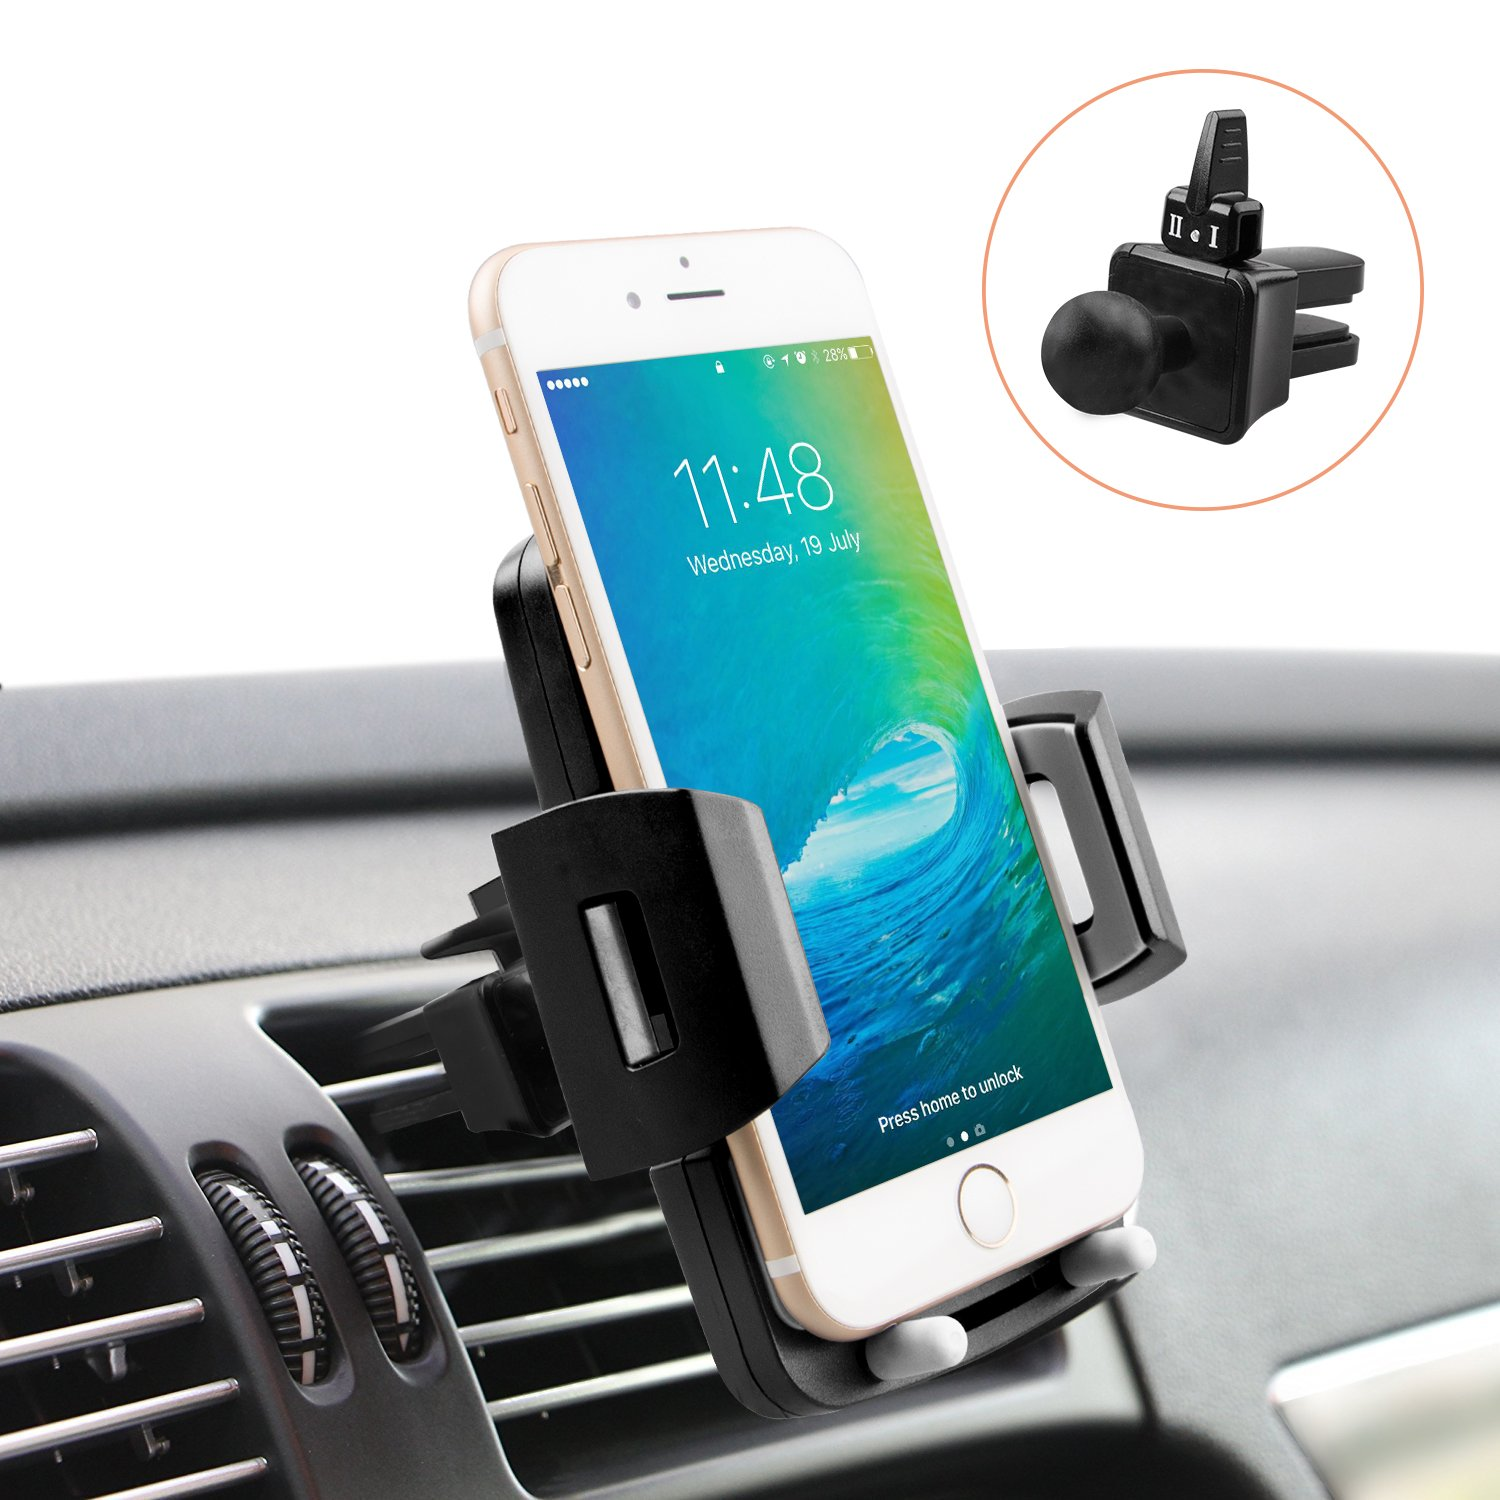 Universal Car Holder, Cell Phone Holder for Car Quntis Phone Holder Car Mount Car Air Vent Holder Cradle, 360 Rotation Cell Phone Mount Compatible with Samsung Galaxy LG Motorola Smartphones